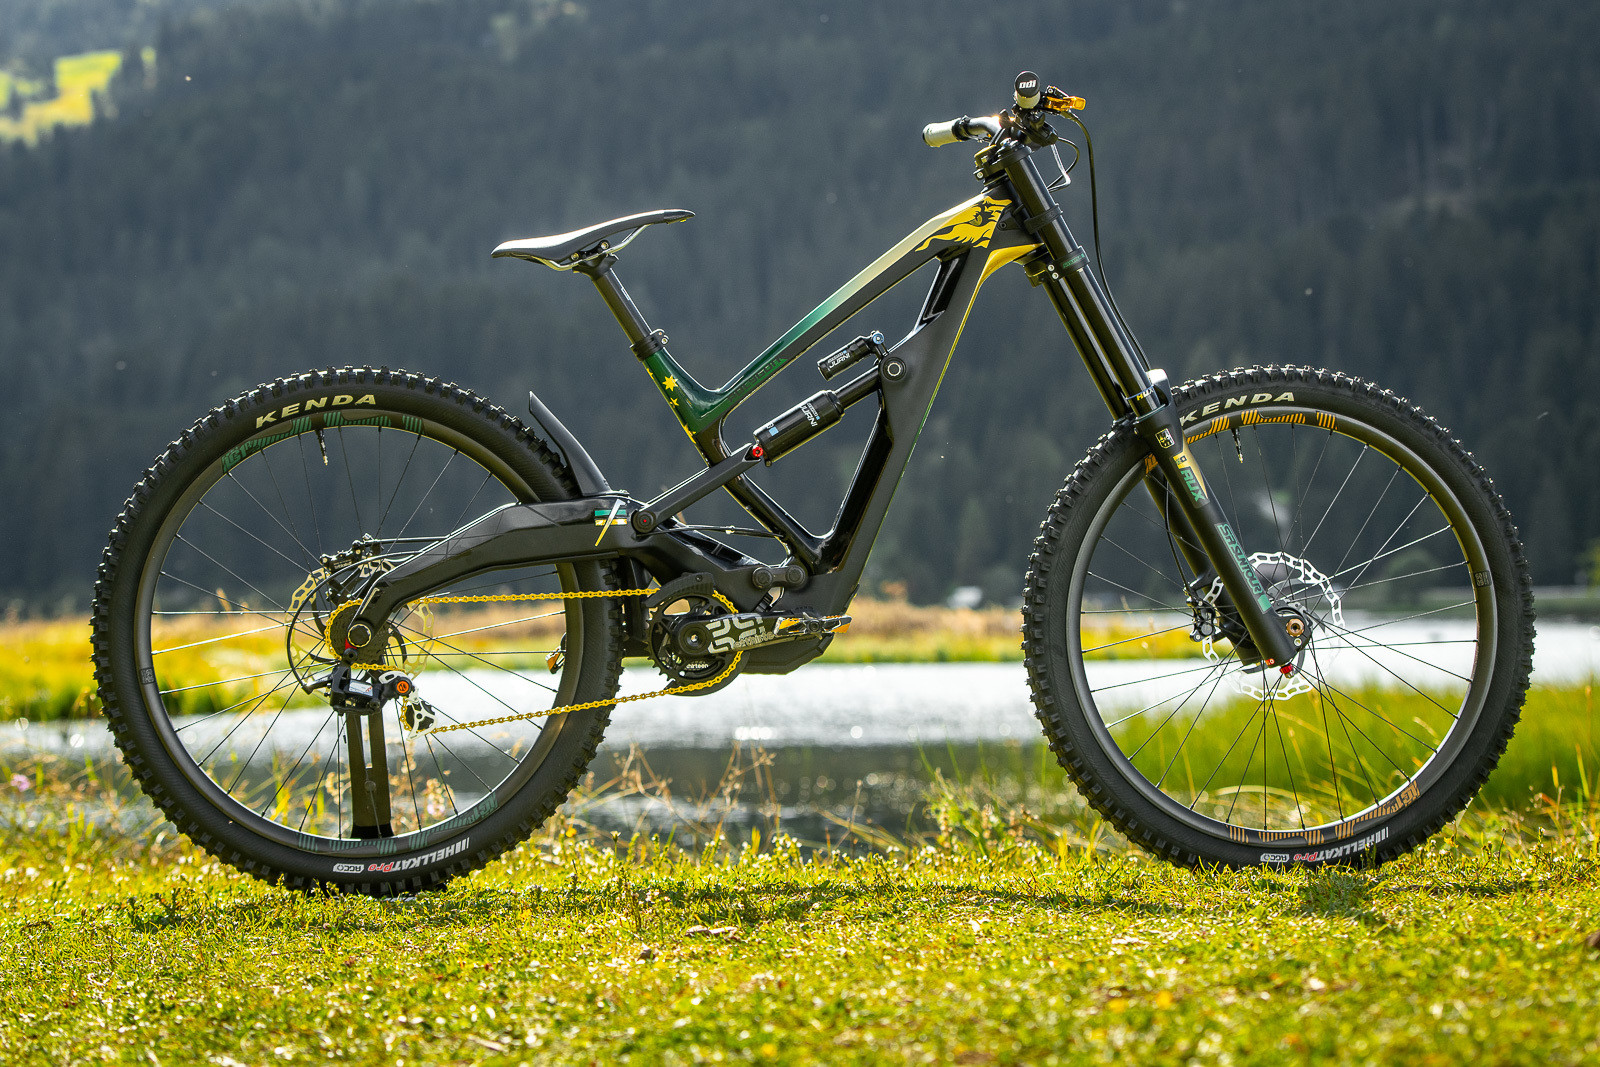 Tracey Hannah's Polygon DH9 - WORLD CHAMPS BIKES - Mick & Tracey Hannah's Polygons - Mountain Biking Pictures - Vital MTB